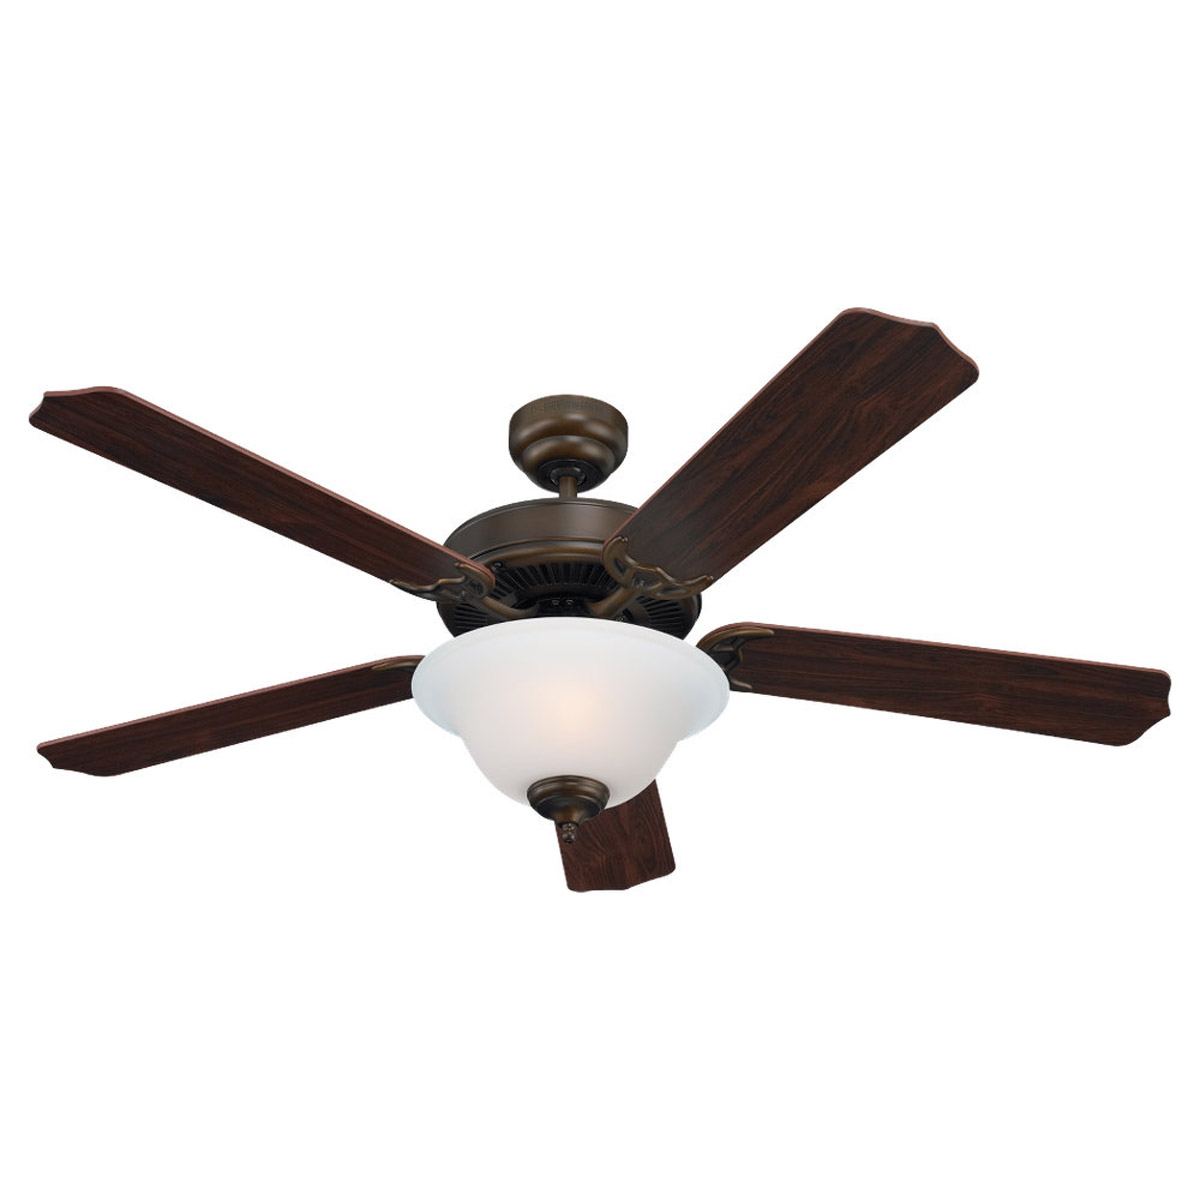 Sea Gull Lighting 2 Light 52in Quality Max Plus Ceiling Fan in Russet Bronze 15030BLE-829 photo